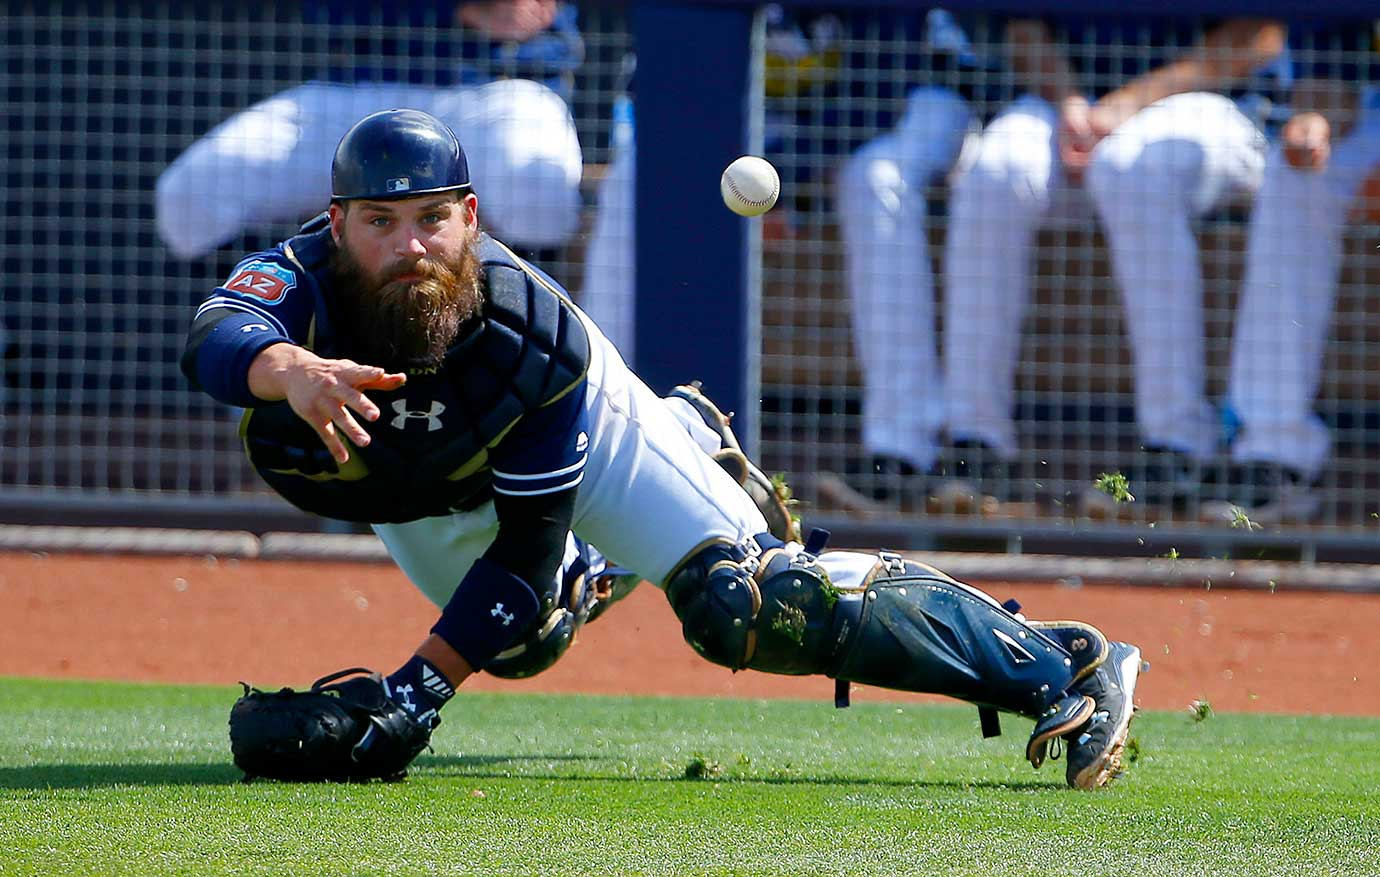 San Diego catcher Derek Norris tosses the ball to pitcher Colin Rea covering home plate after a pitch got away from Norris.